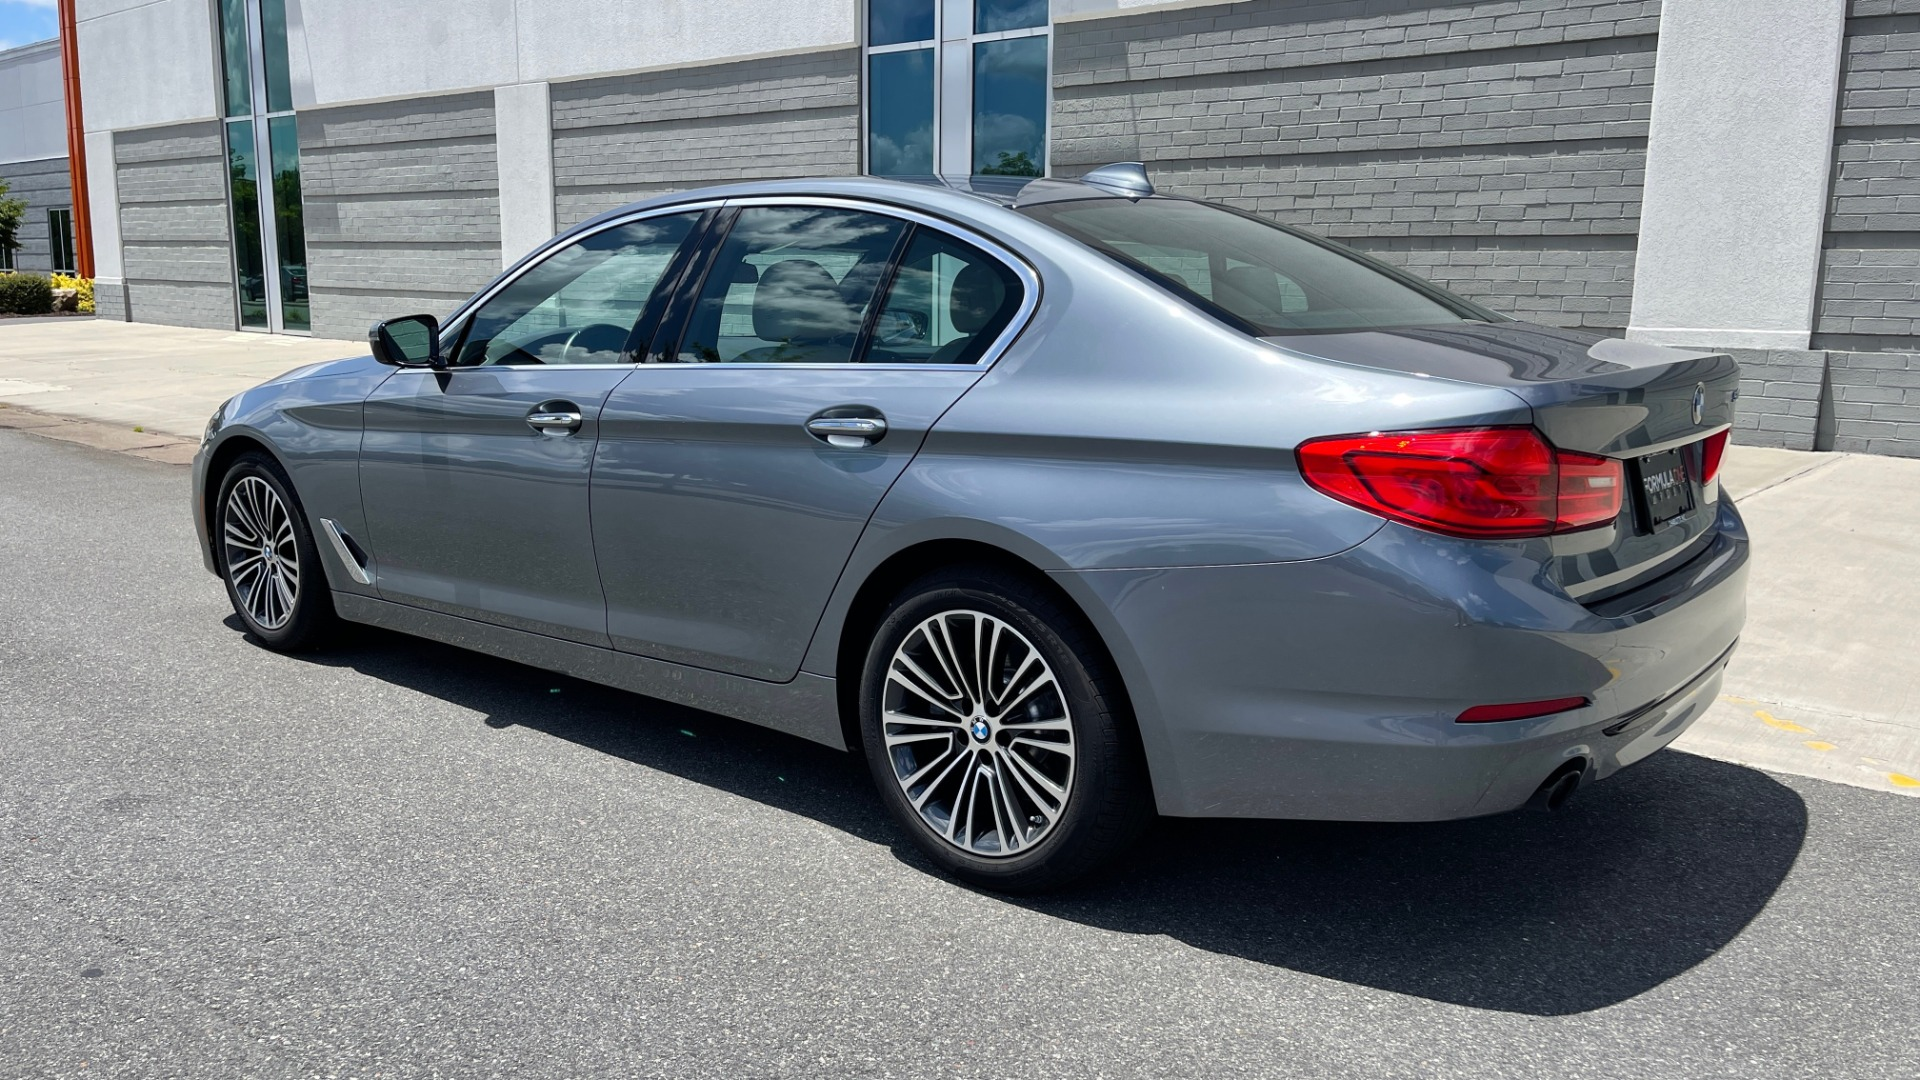 Used 2017 BMW 5 SERIES 530I PREMIUM / WIFI / NAV / SUNROOF / AUTO CLIMATE CONTROL for sale $31,795 at Formula Imports in Charlotte NC 28227 5